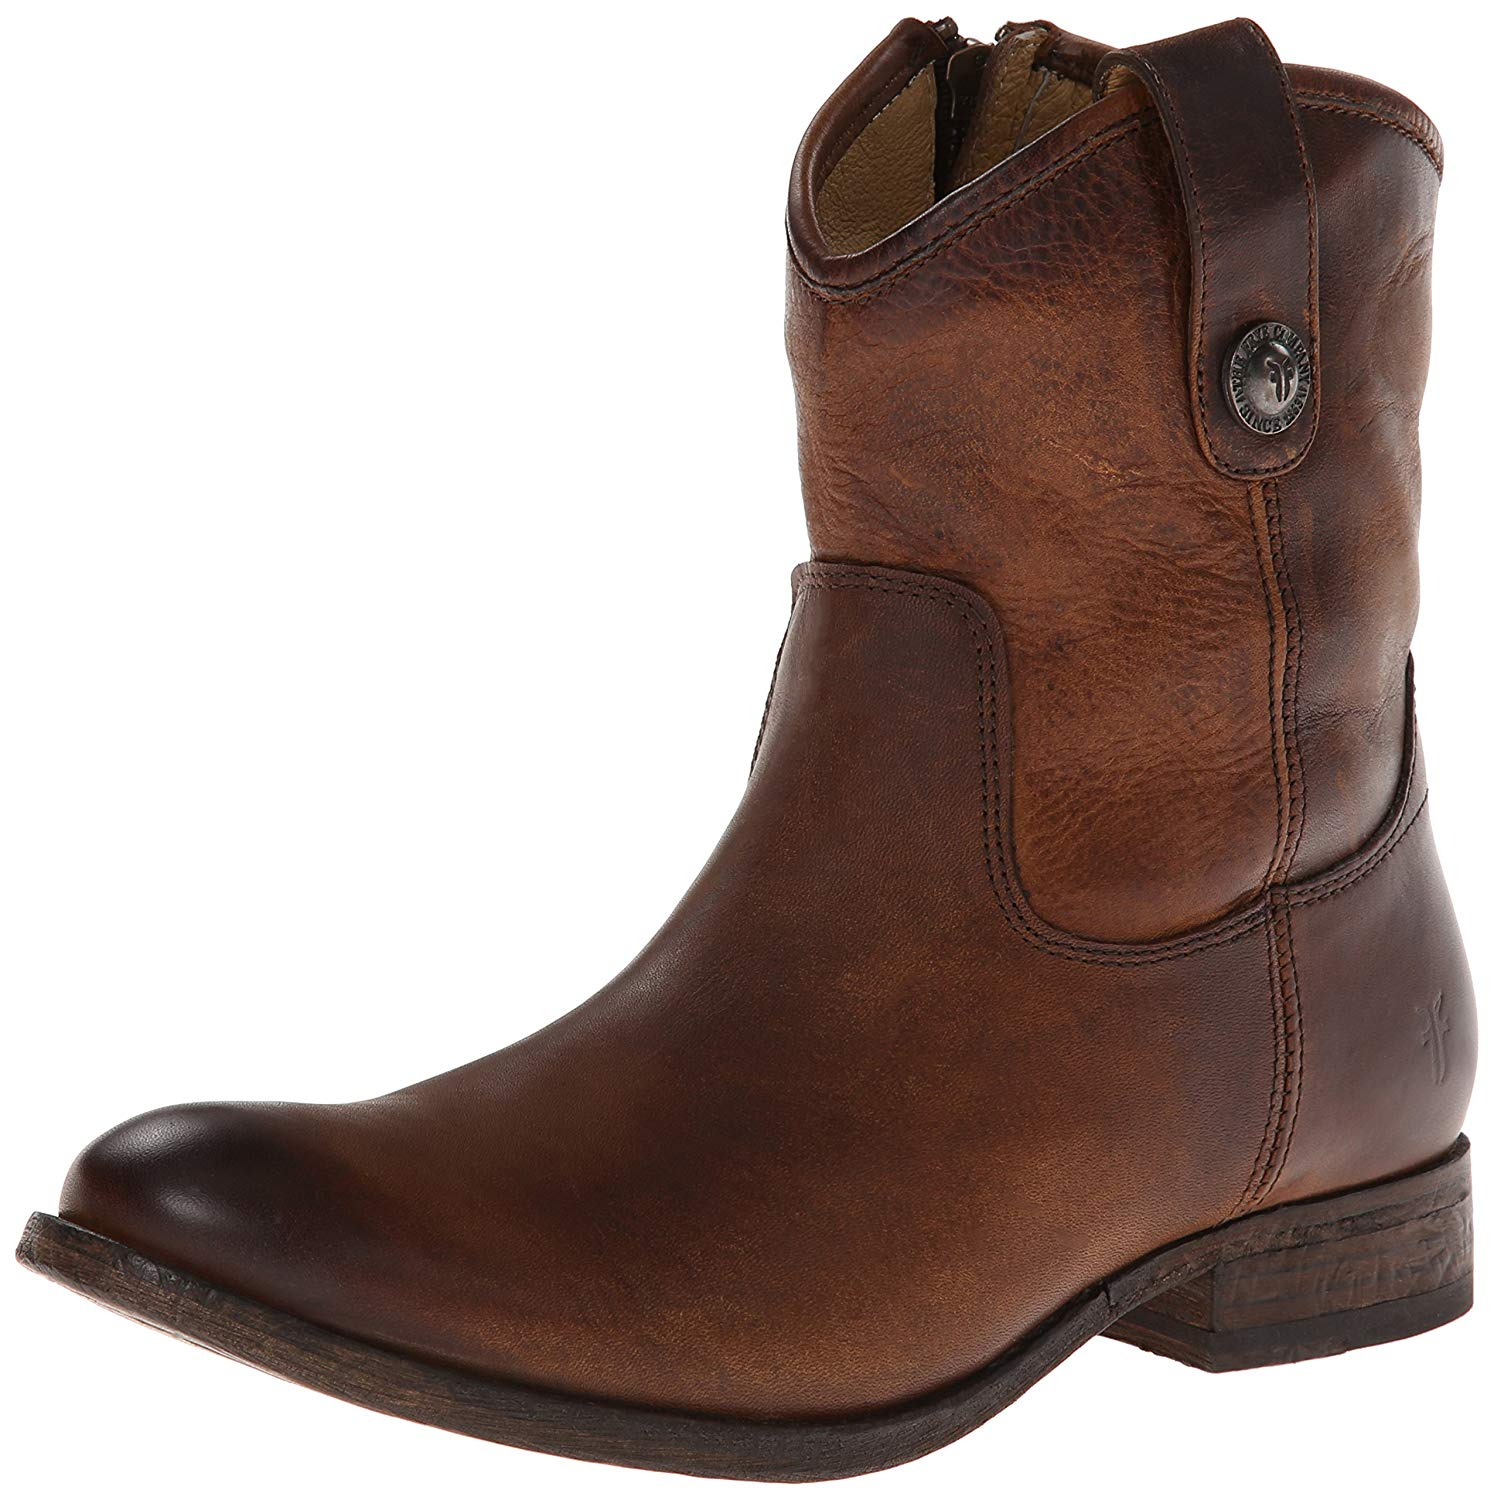 7d5edf96130 Cheap Short Ankle Boot, find Short Ankle Boot deals on line at ...